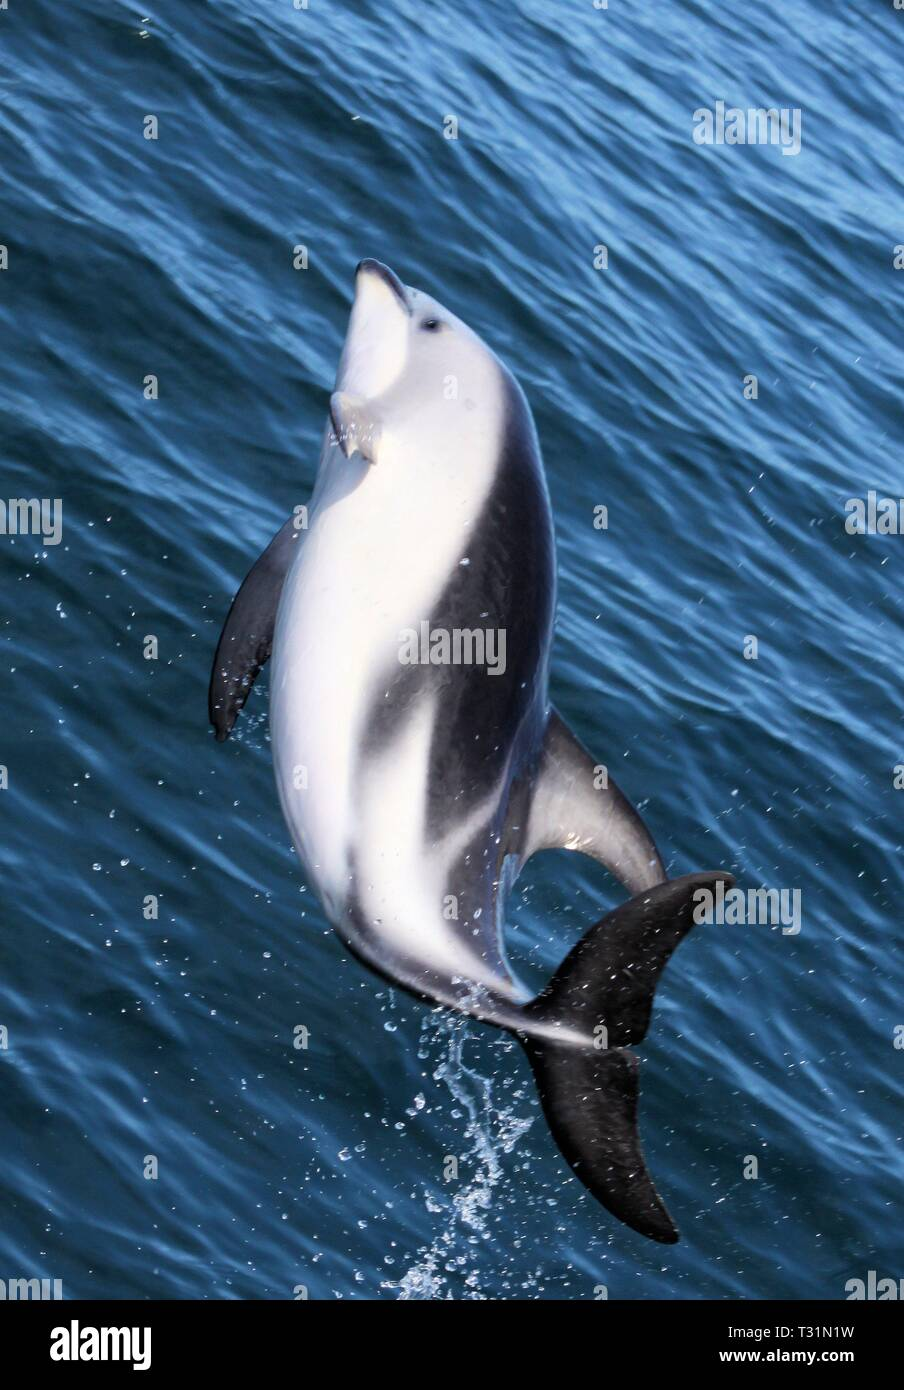 Dolphins having fun in the ocean during whale watching trip - New Zealand, Kaikōura - Stock Image